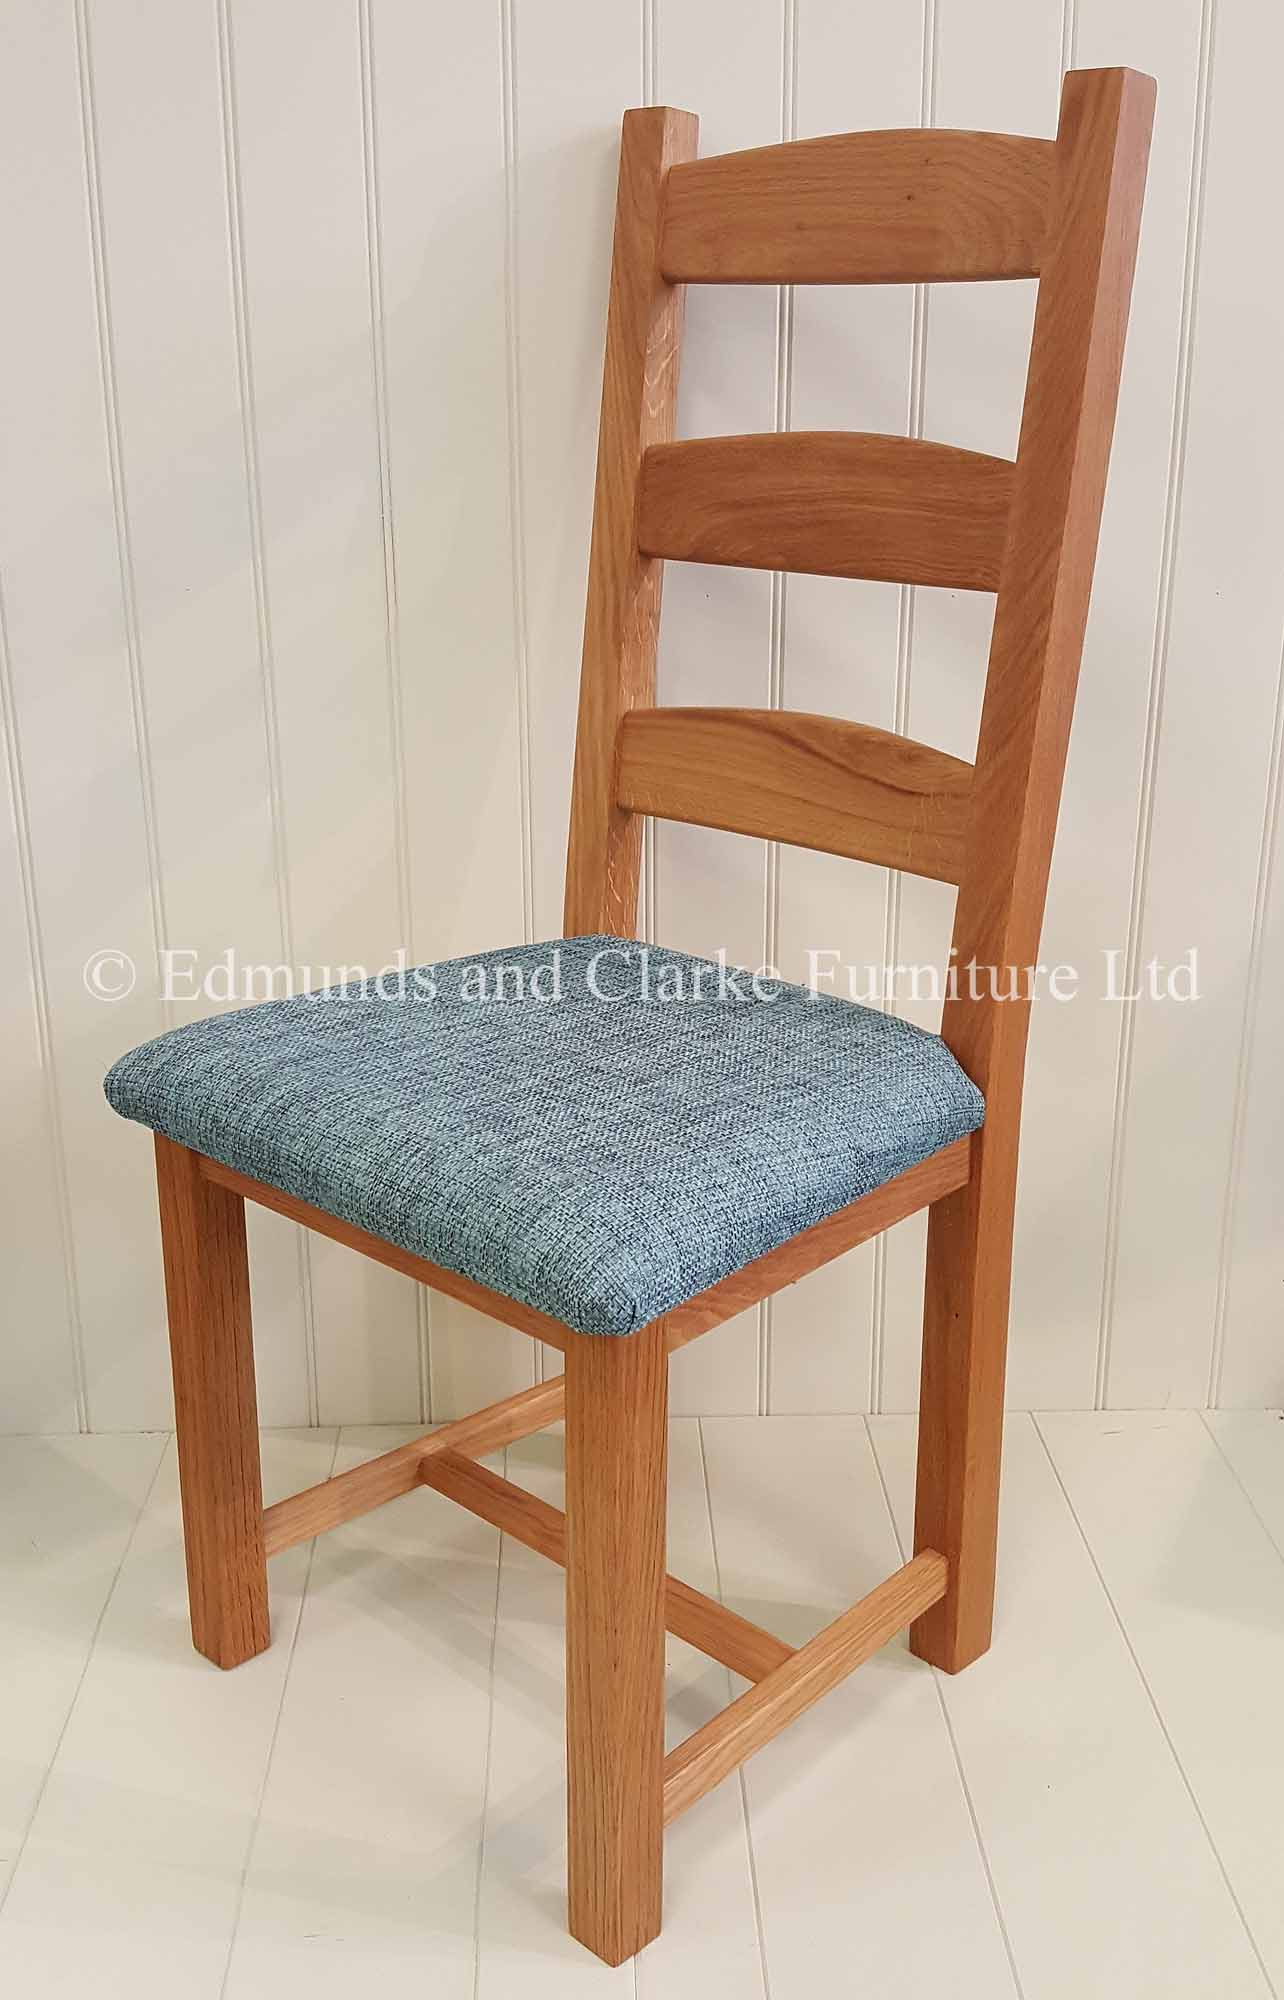 Edmunds Amish Oak dining chair with choice of seat pads. available in light lacquered oak or oiled oak finish. three wide horizontal slats on the back. available only at Edmunds and clarke bury st edmunds